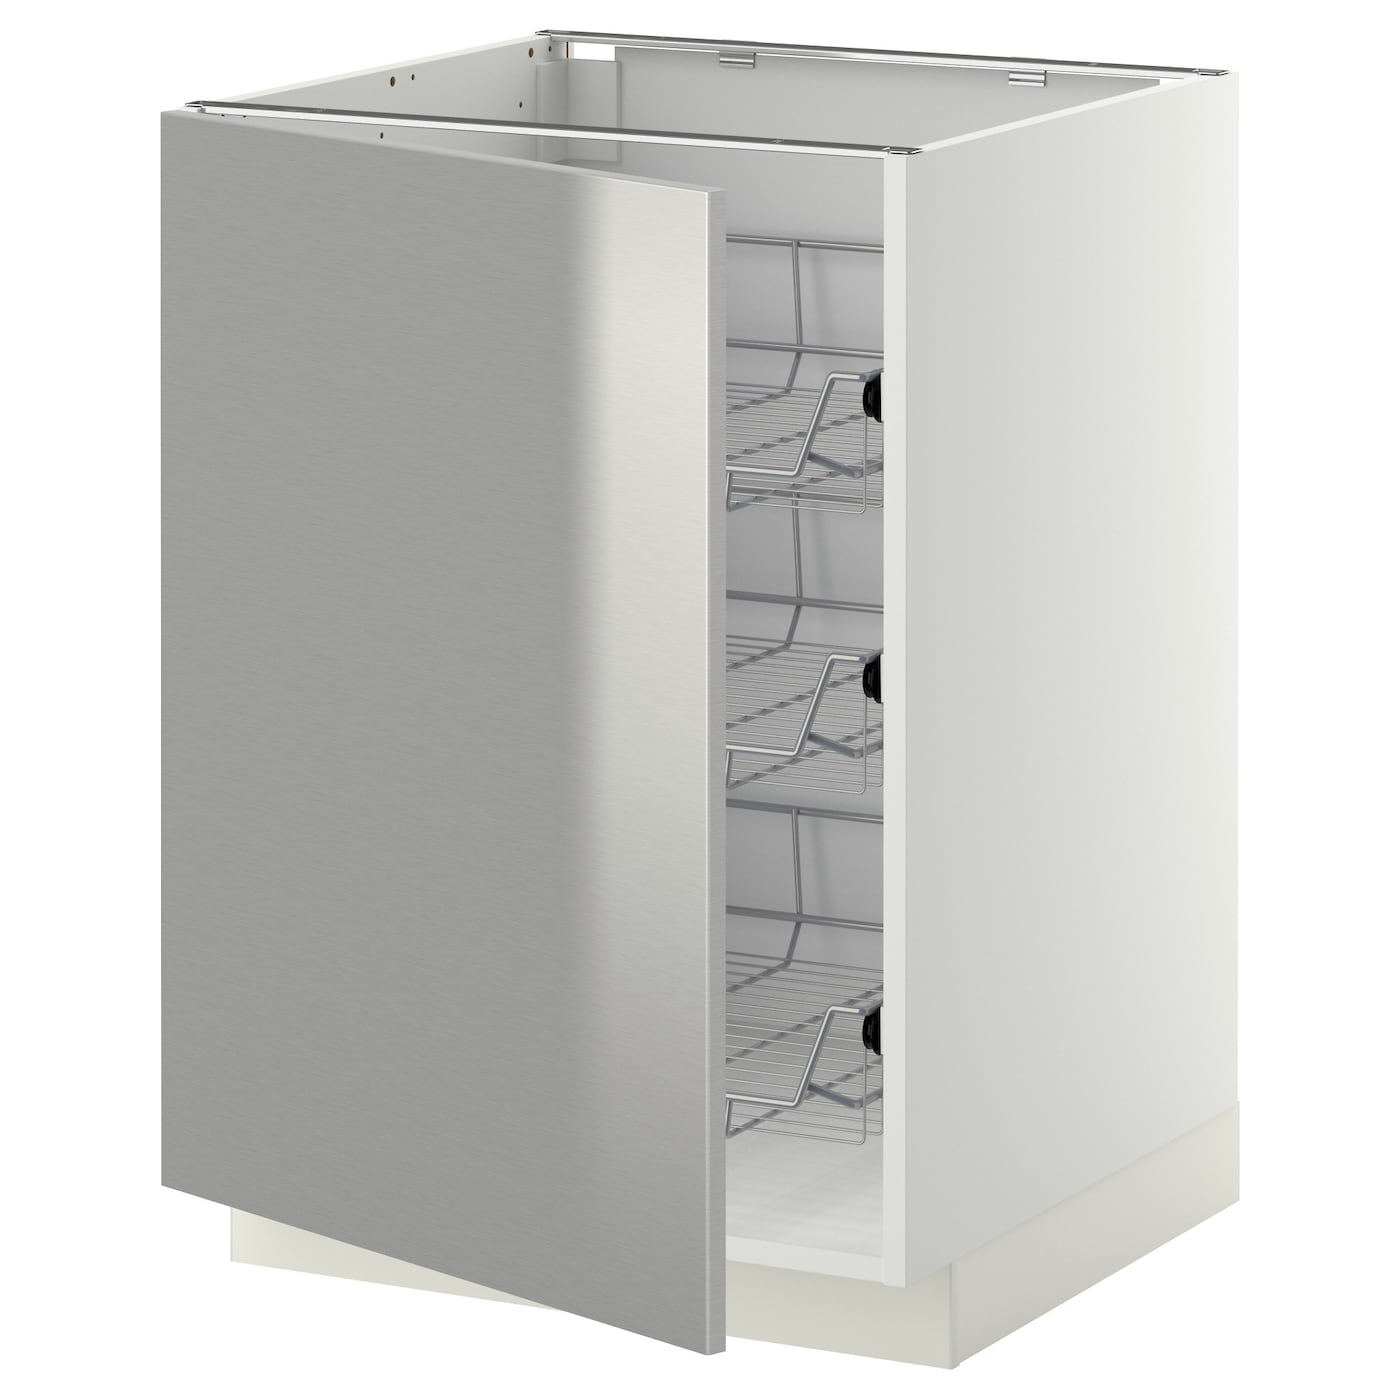 Stainless Steel Kitchen Base Cabinets: METOD Base Cabinet With Wire Baskets White/grevsta